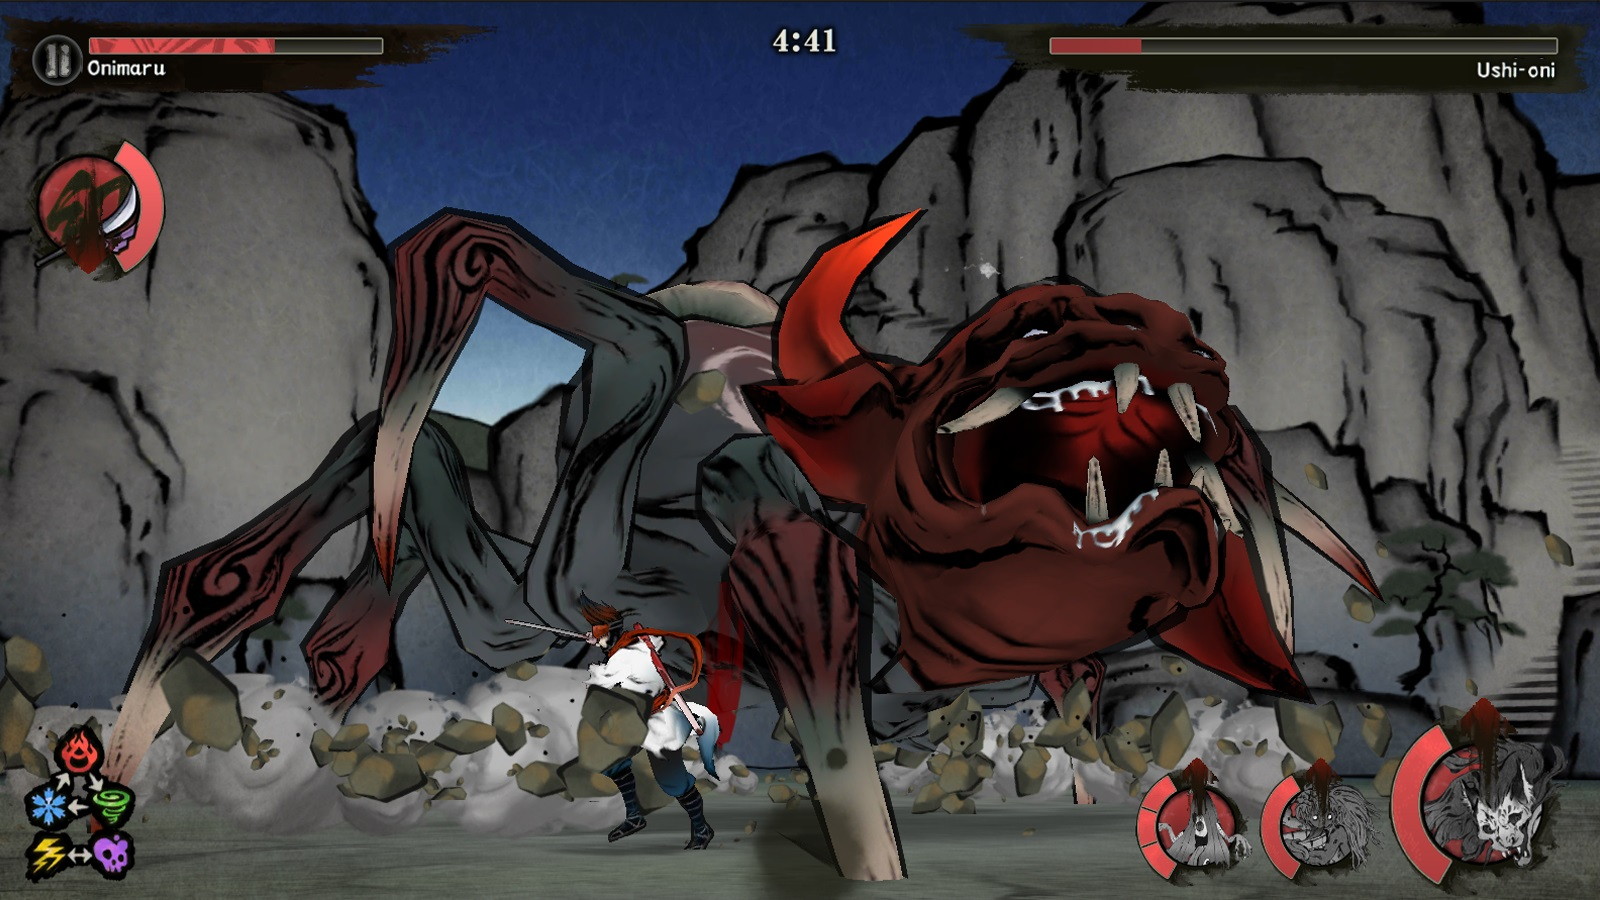 Platinum Games and DeNA Announce Mobile Samurai Action Game World of Demons